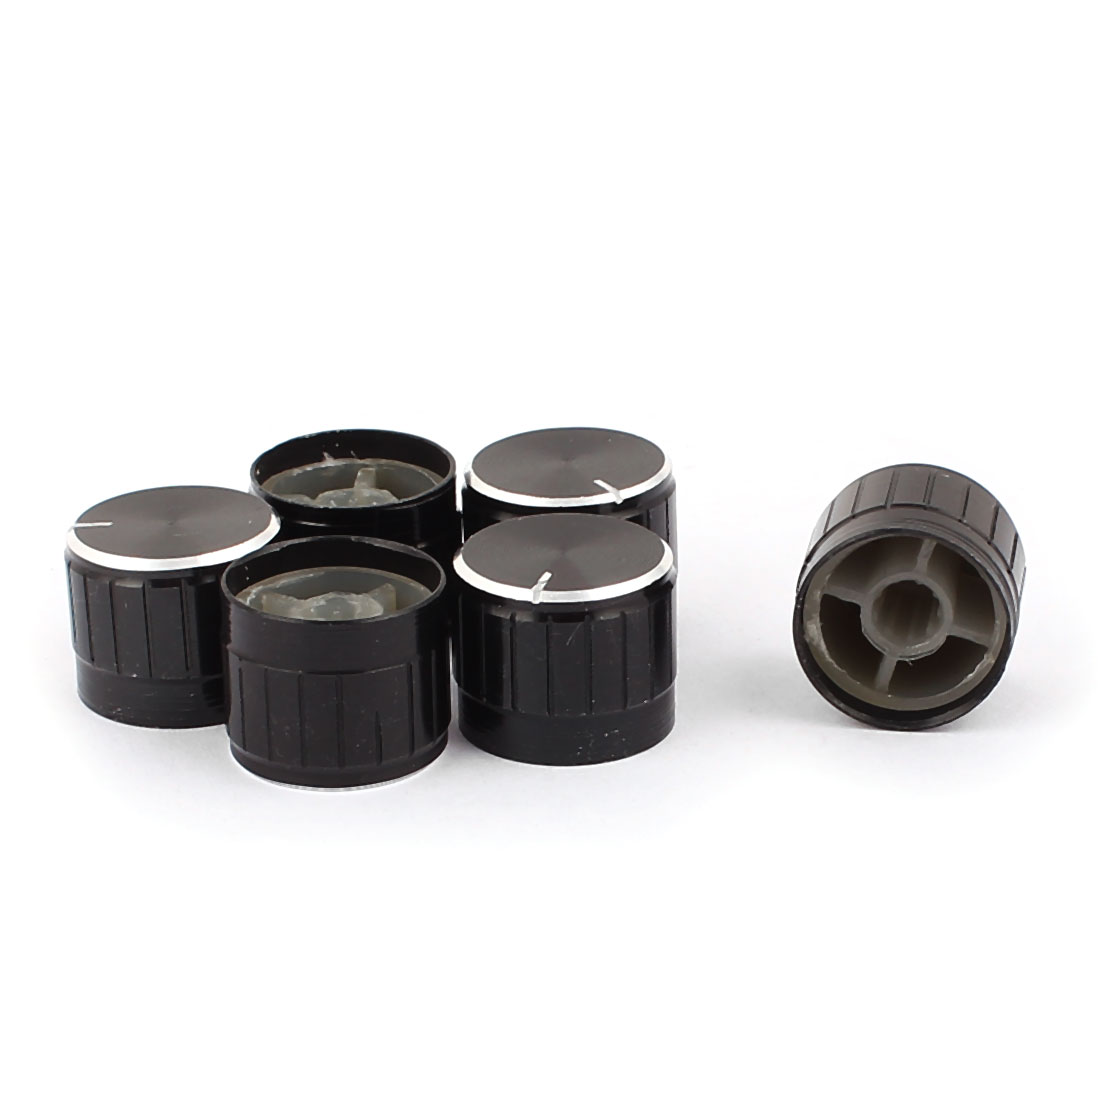 6 Pcs 21mm x 6mm Aluminium Alloy Potentiometer Control Knob Mini Cap Knurled Button Black